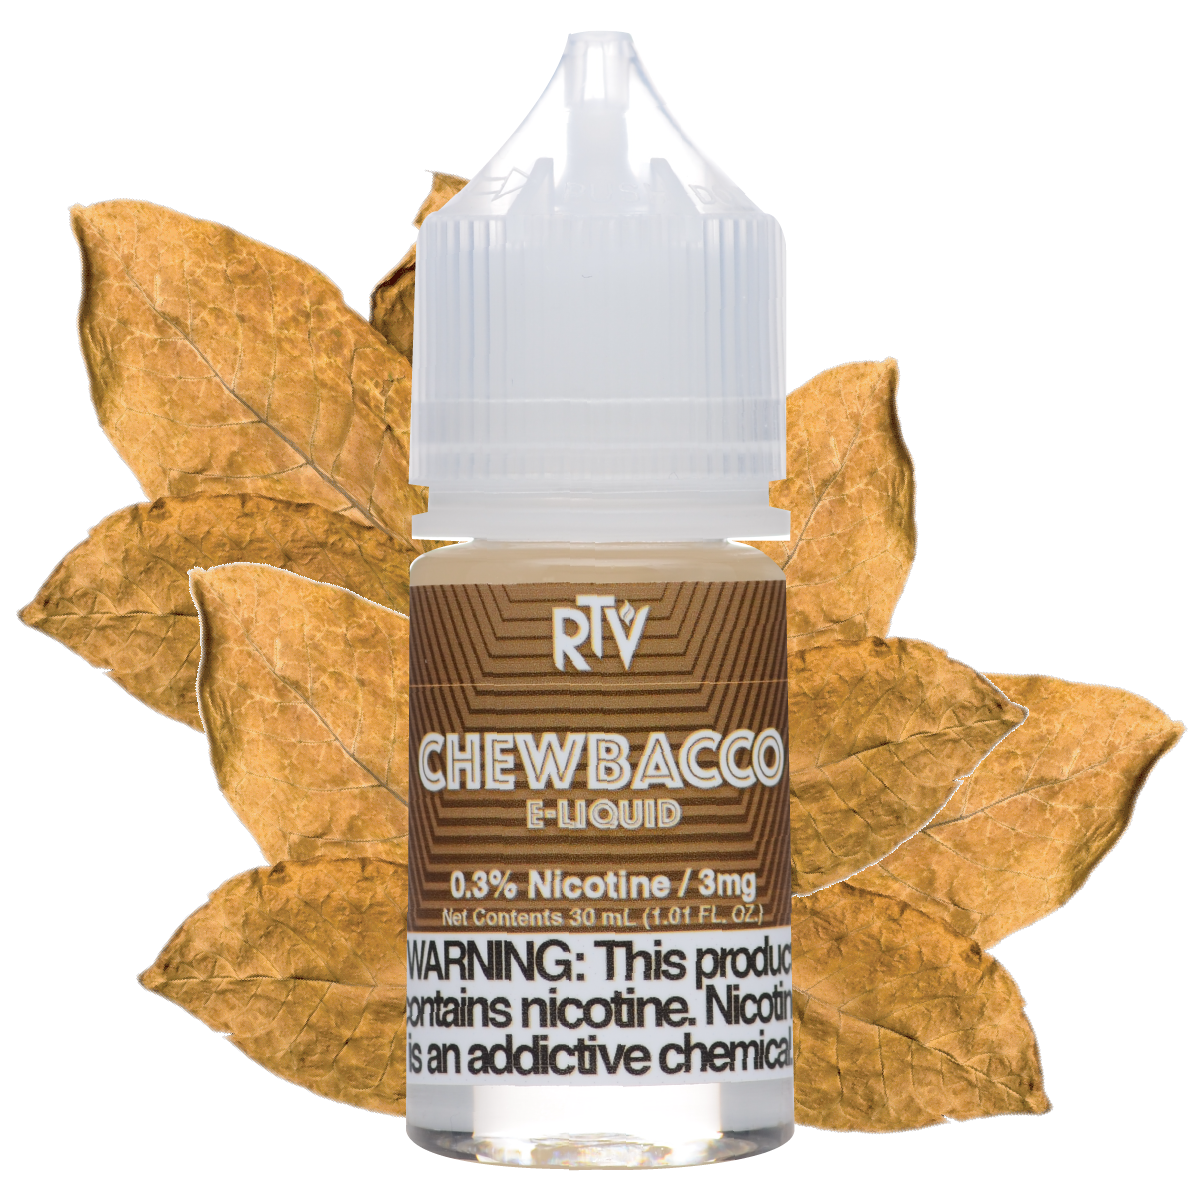 e-Liquid Chewbacco